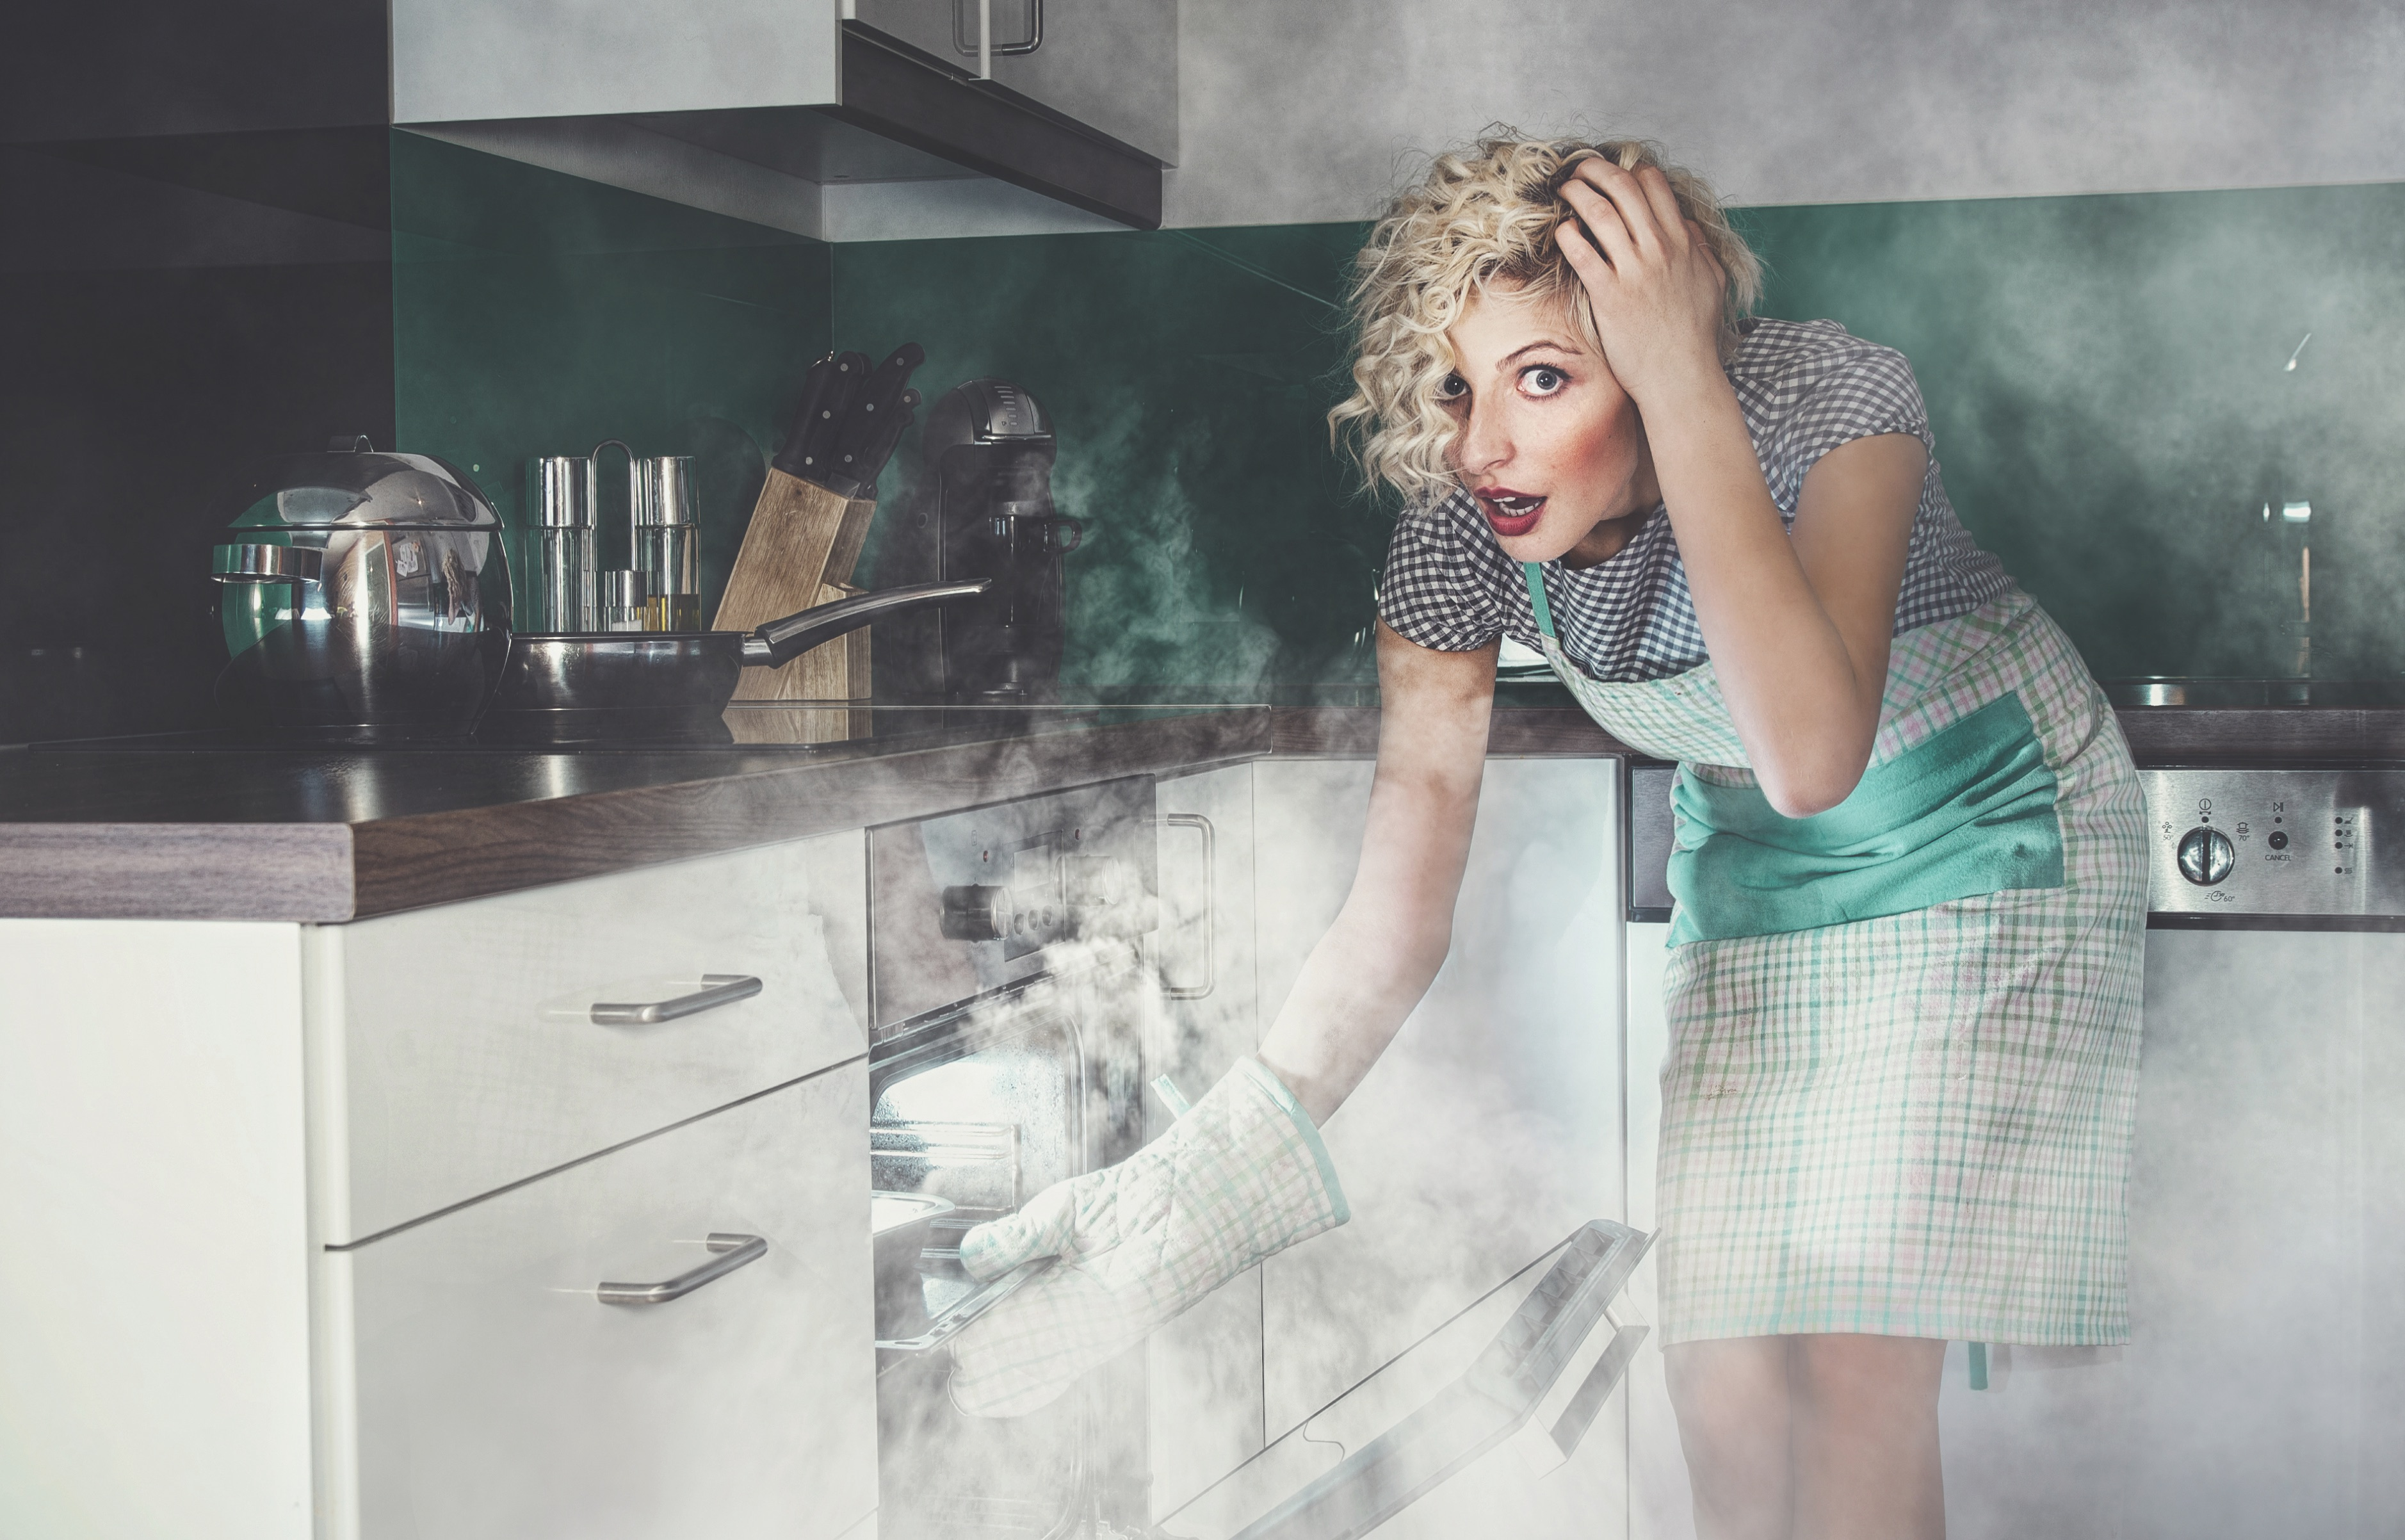 Astonished woman cook or housewife frying lunch in a oven. Smoke, vapor around in the kitchen or home. Creative photo